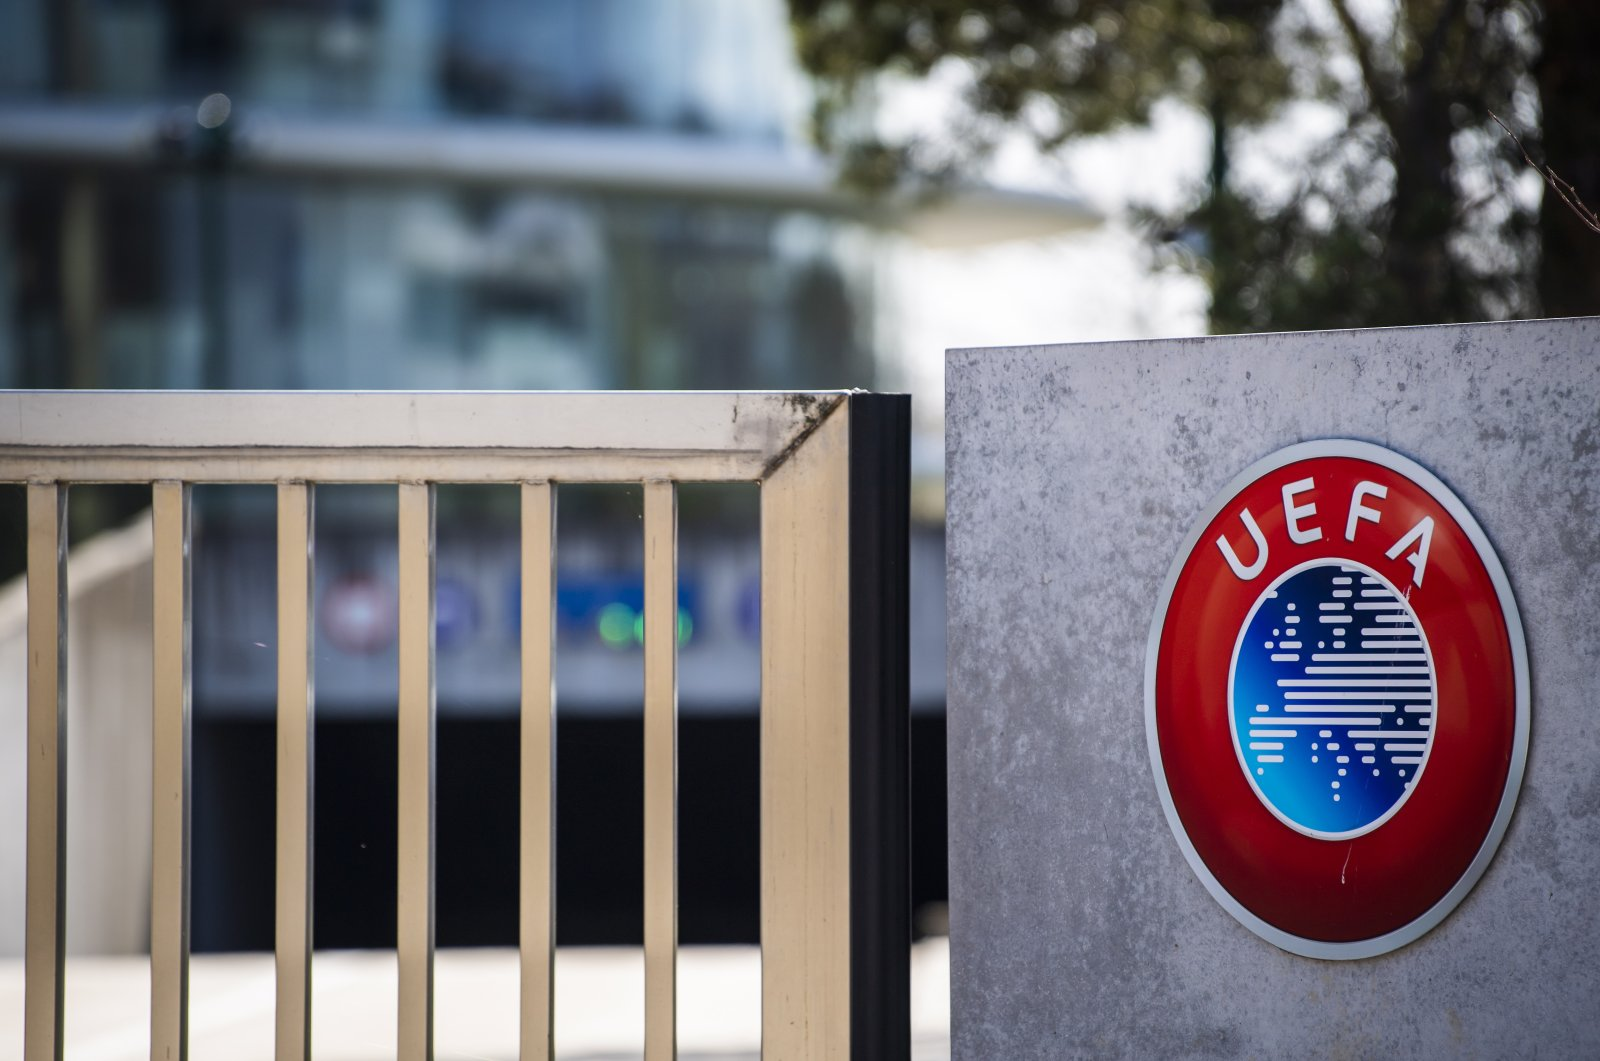 The UEFA logo is pictured at the entrance of the UEFA headquarters in Nyon, Switzerland, March 17, 2020. (EPA Photo)